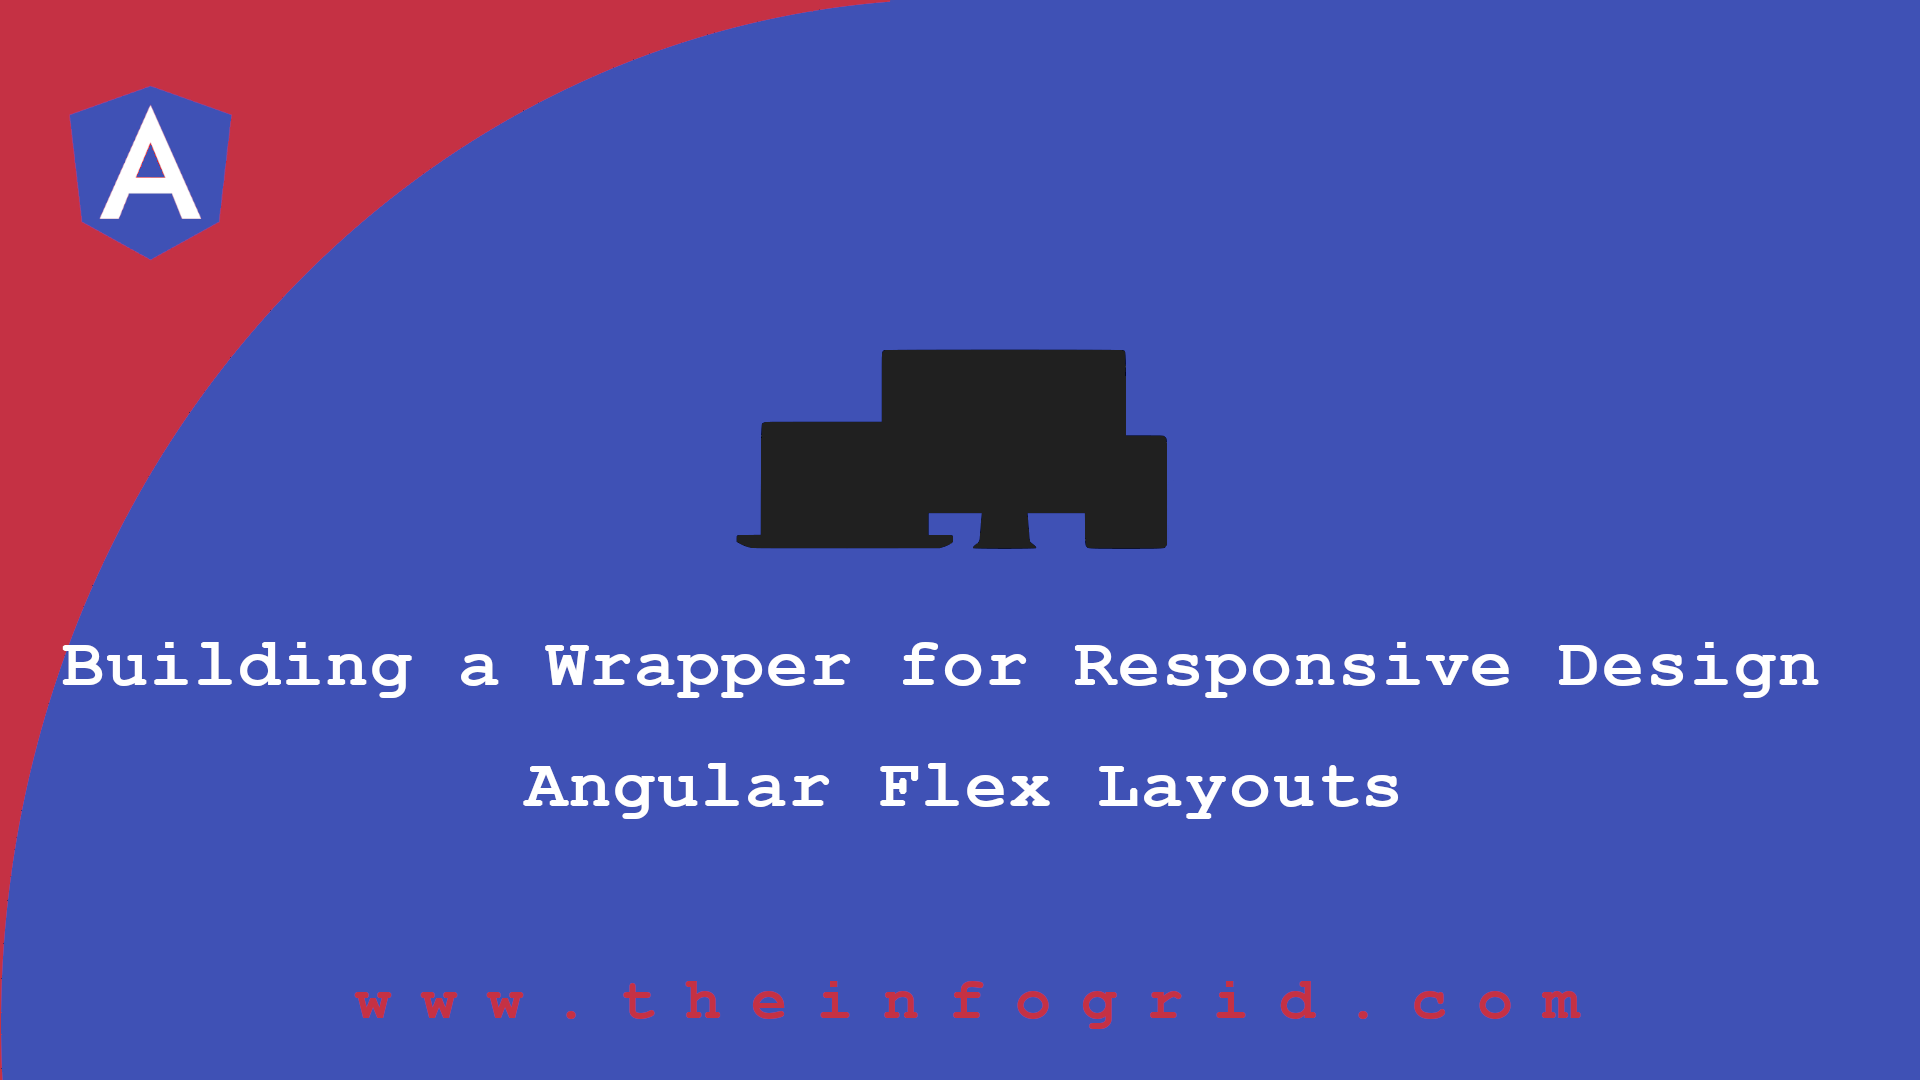 Building a Wrapper for Responsive Design for Angular Flex Layout